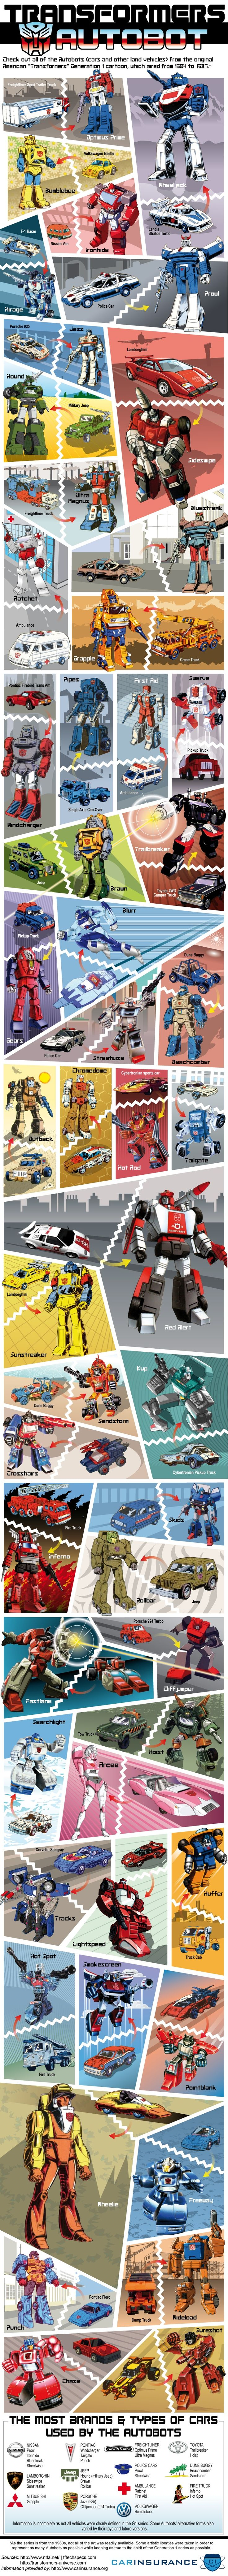 Transformers: The Cars Behind the Original Autobots